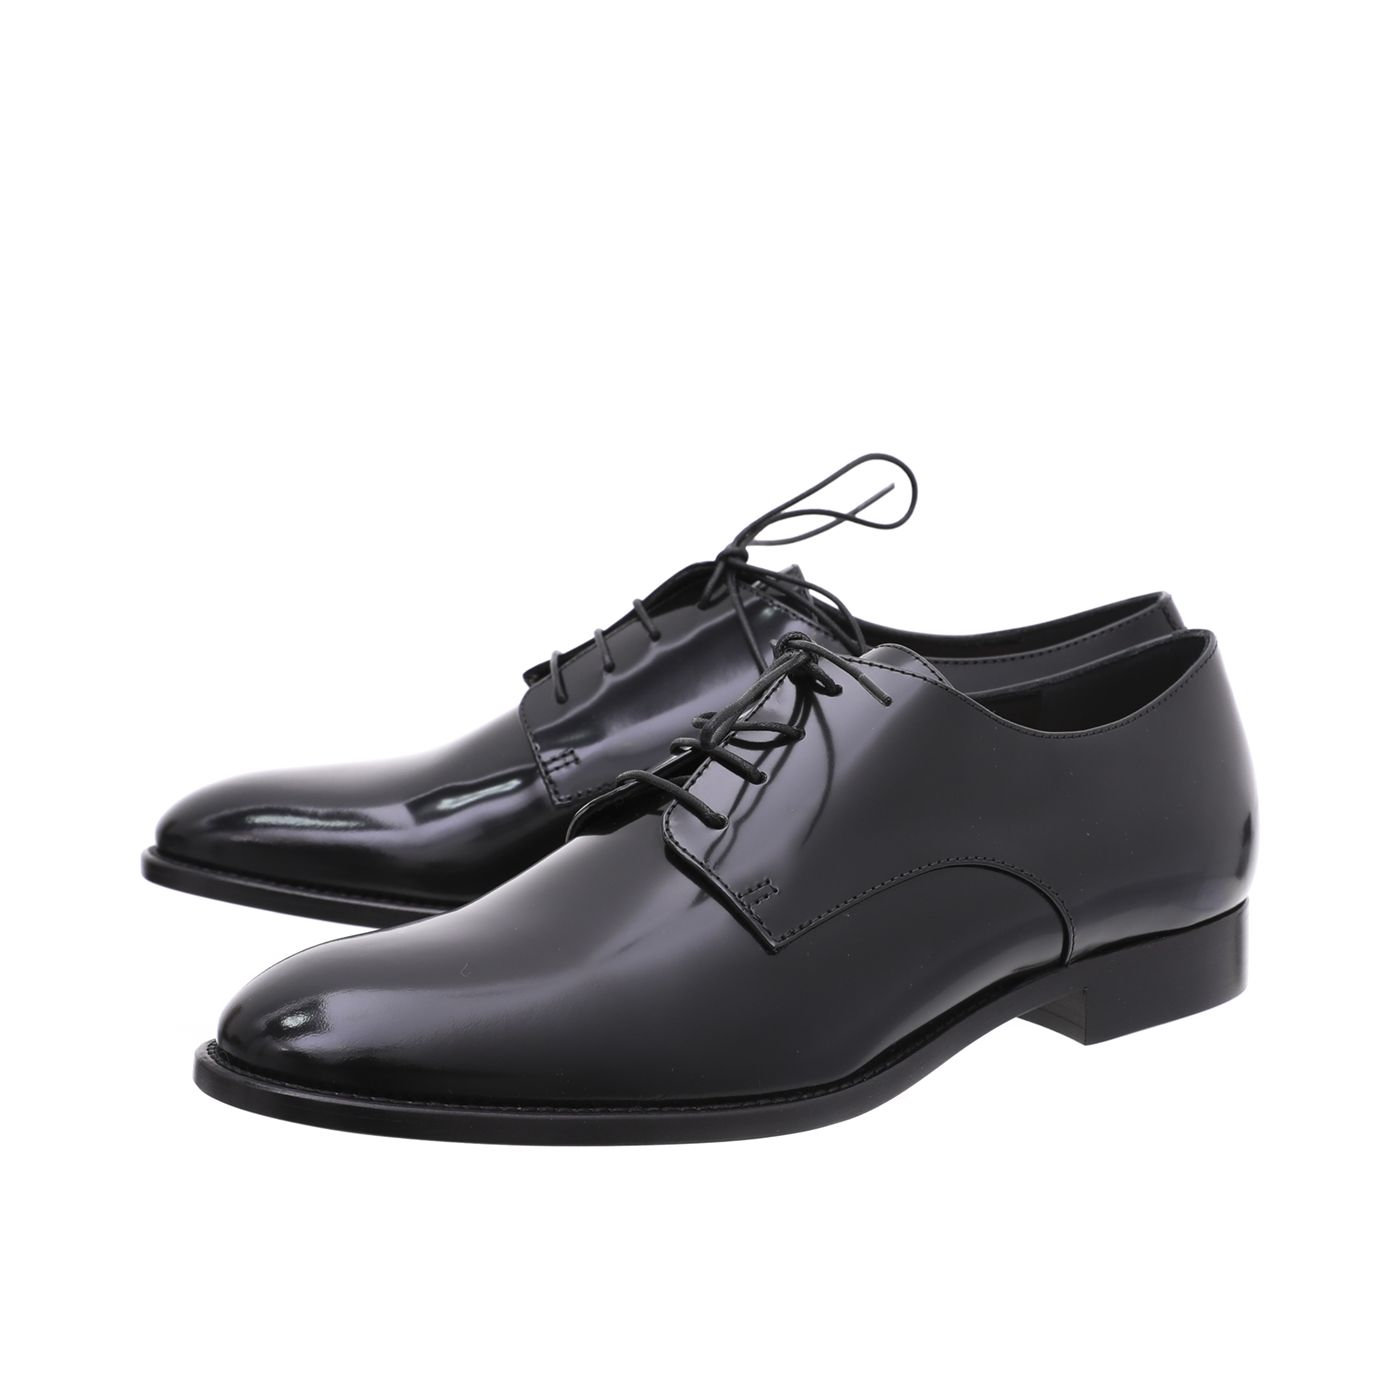 Christian Dior Black Shiny Derby Shoe 38